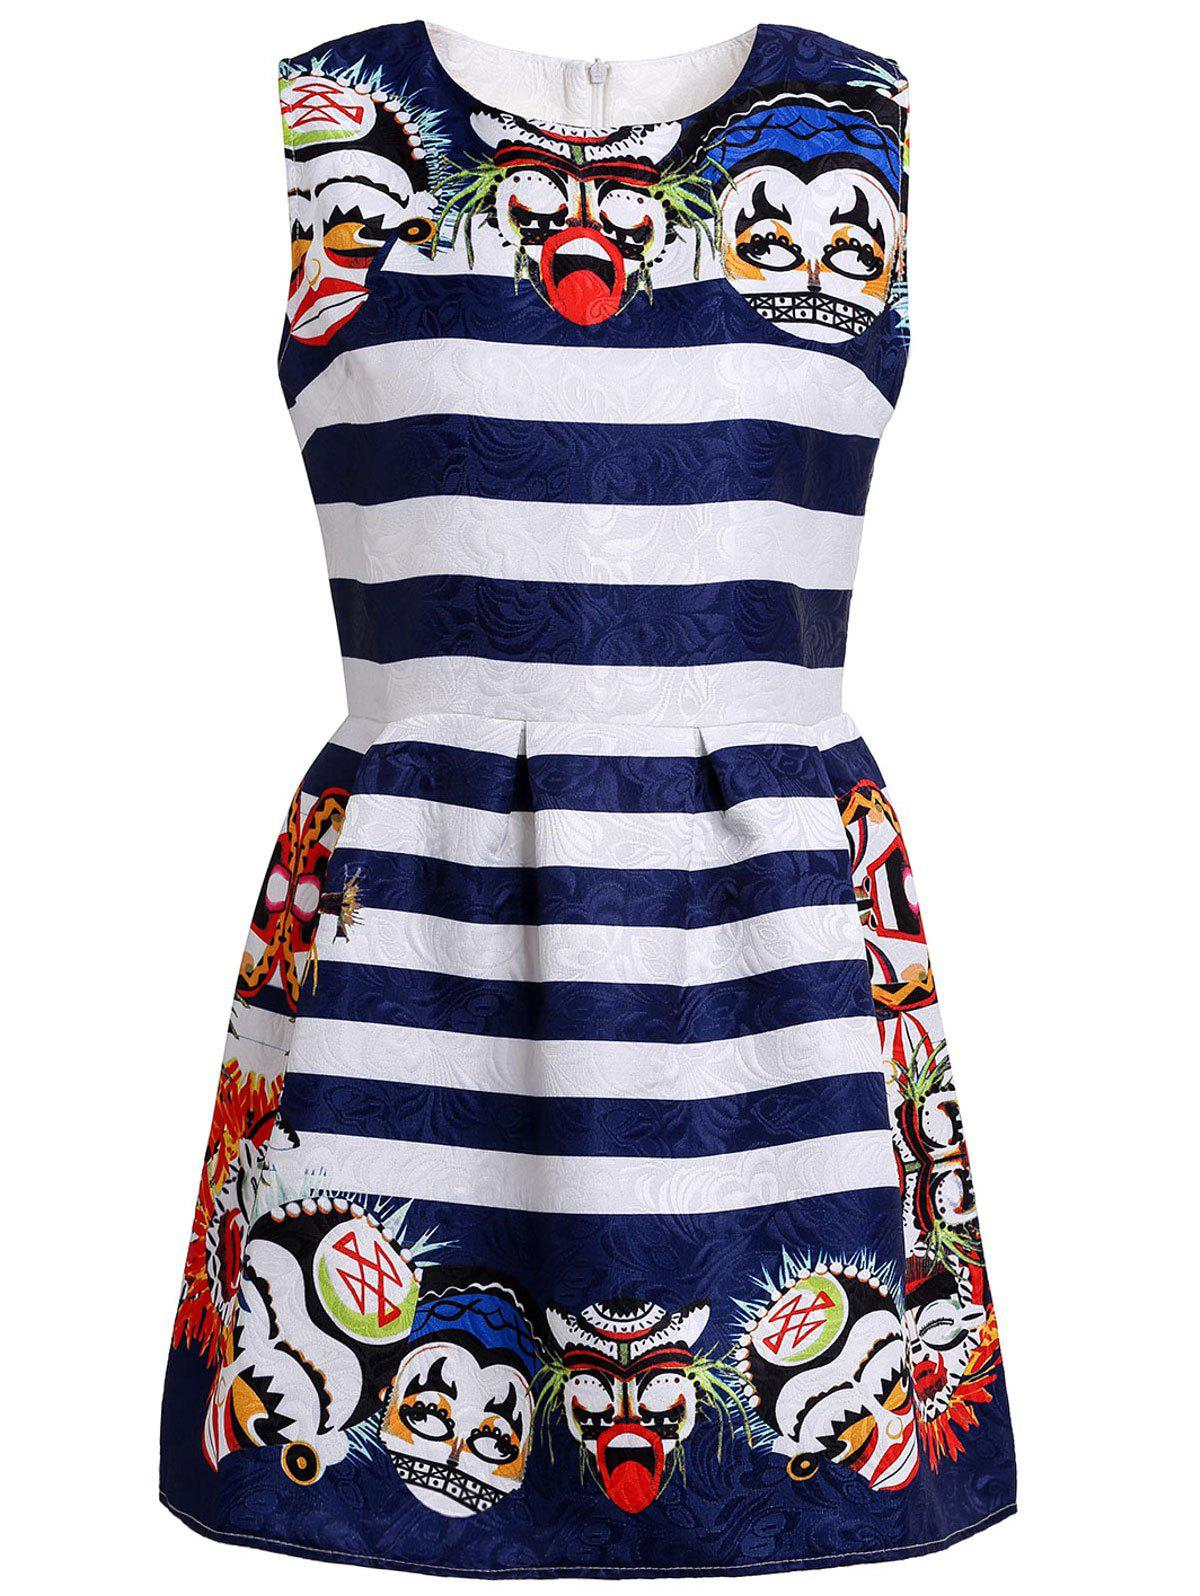 Retro Striped Round Collar Facial Makeup Print Sleeveless Dress For Women - BLUE/WHITE S